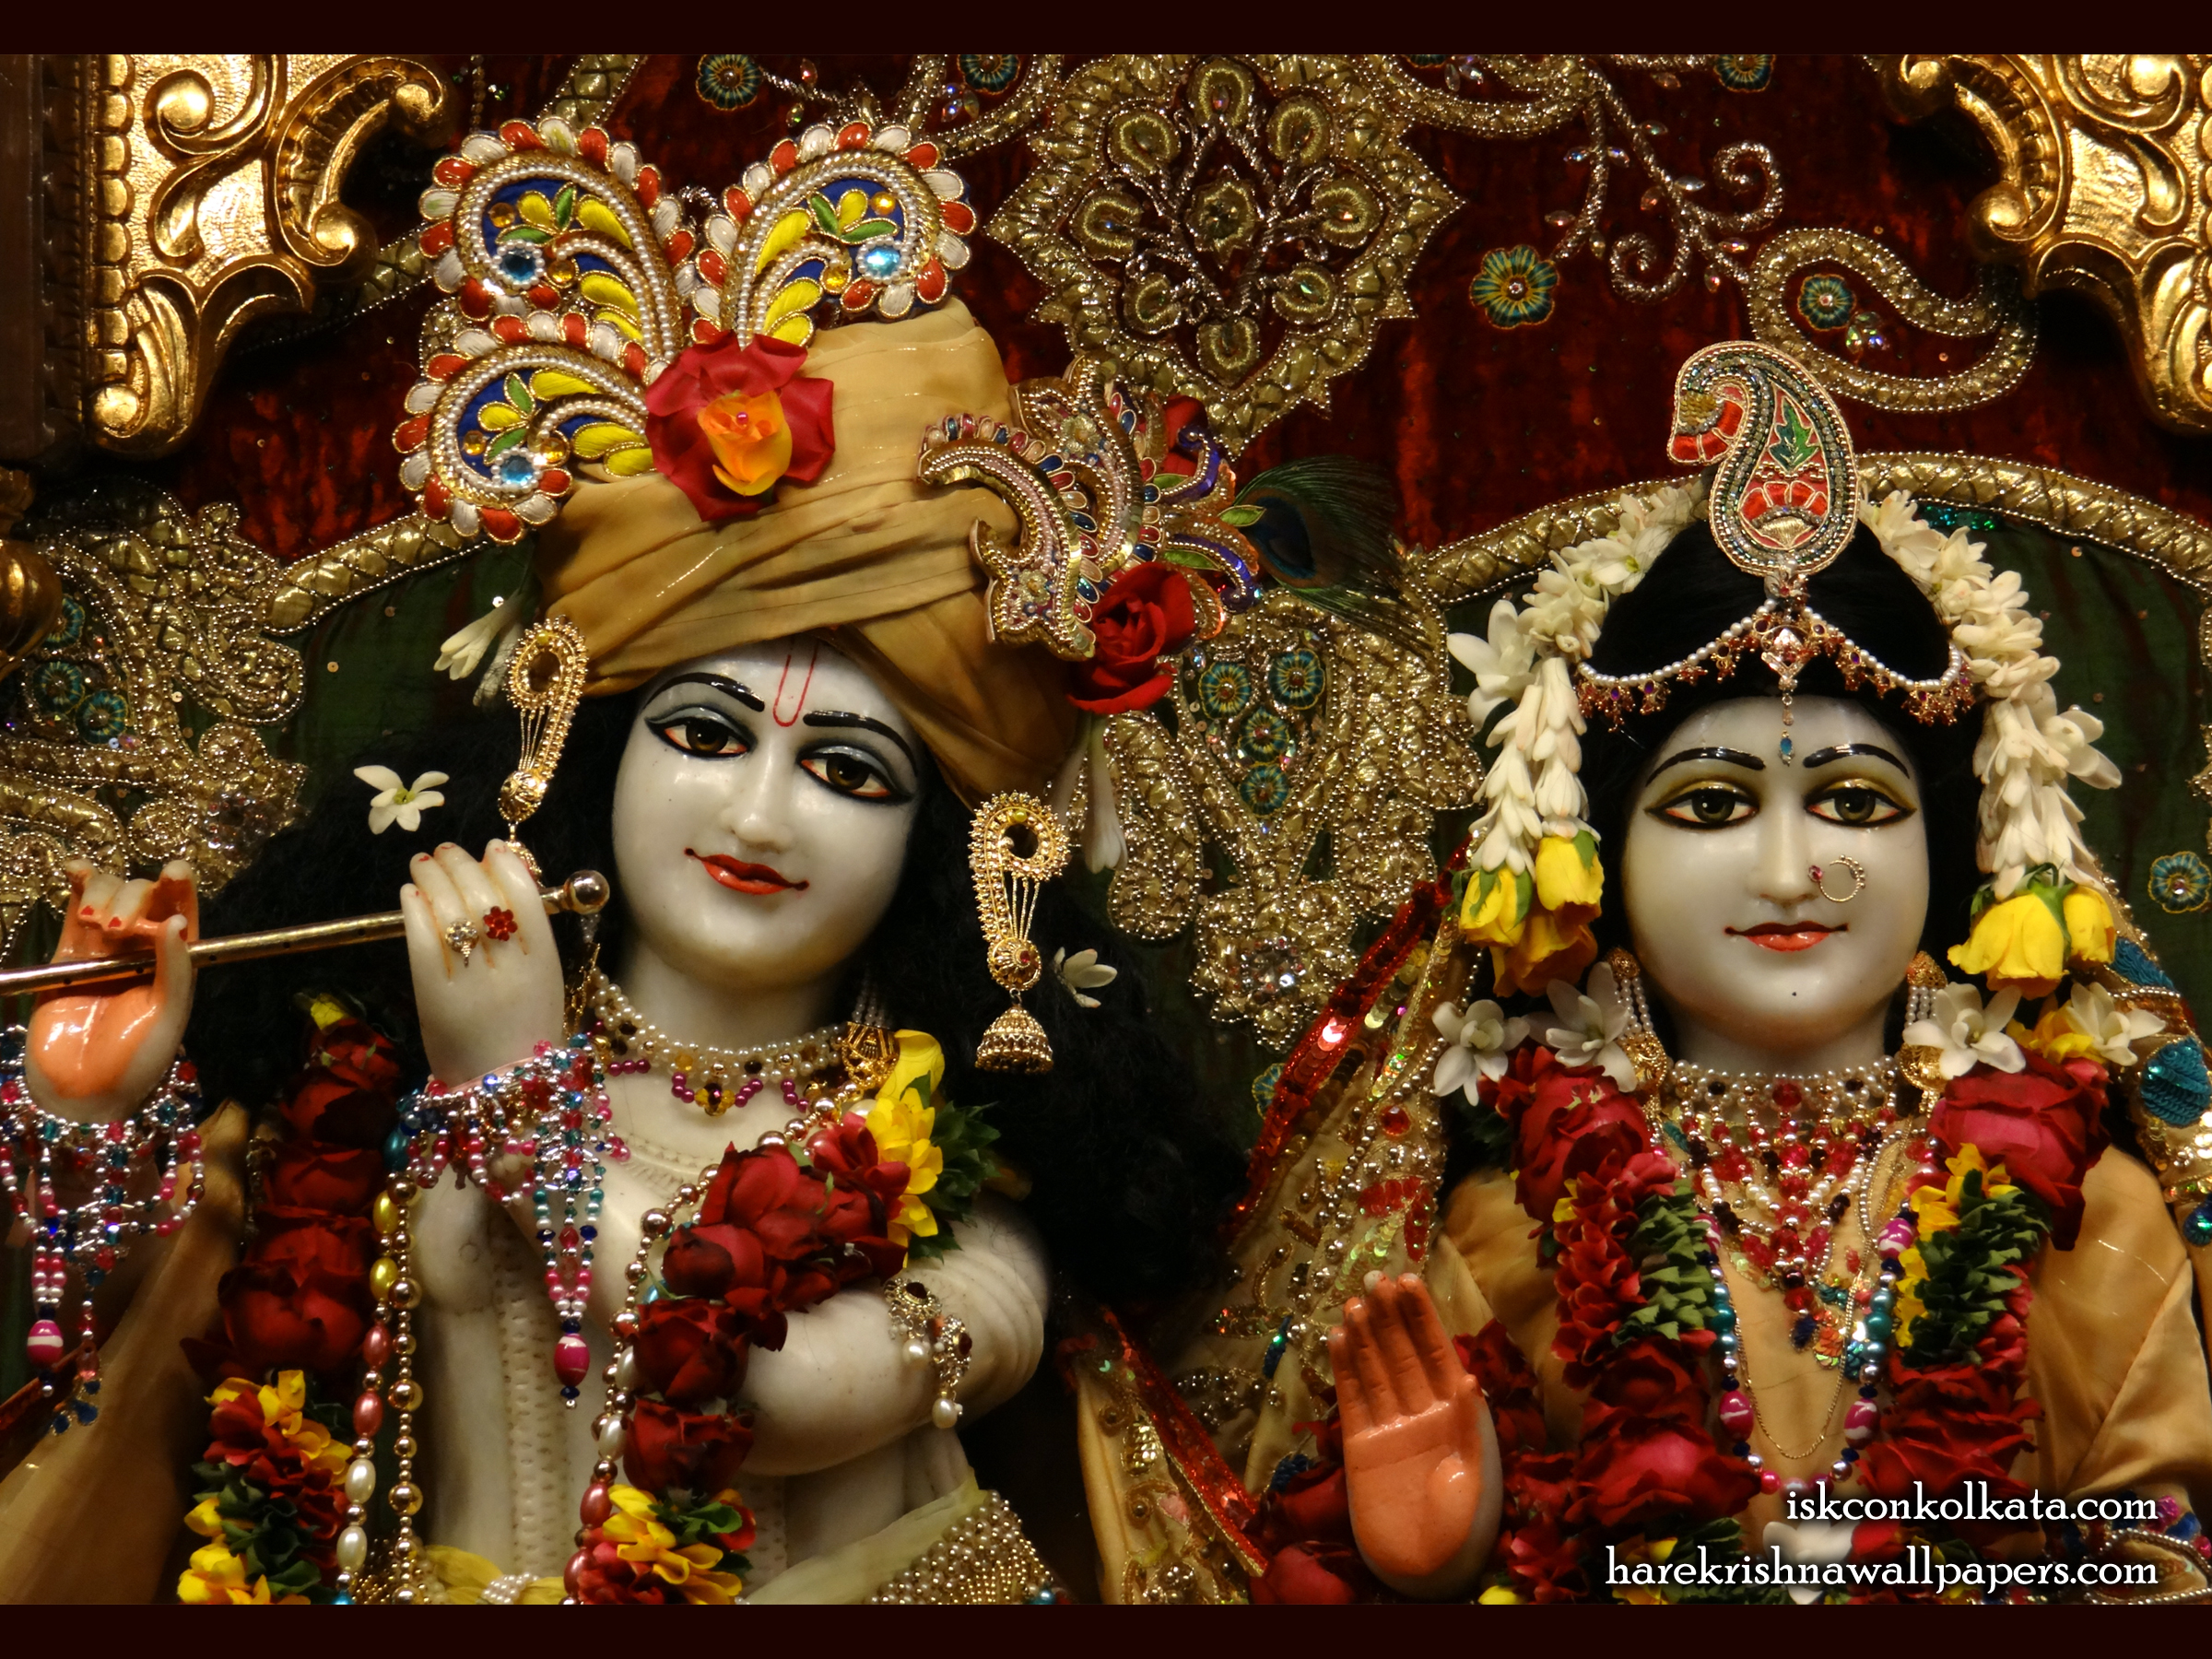 Sri Sri Radha Govinda Close up Wallpaper (009) Size 2400x1800 Download